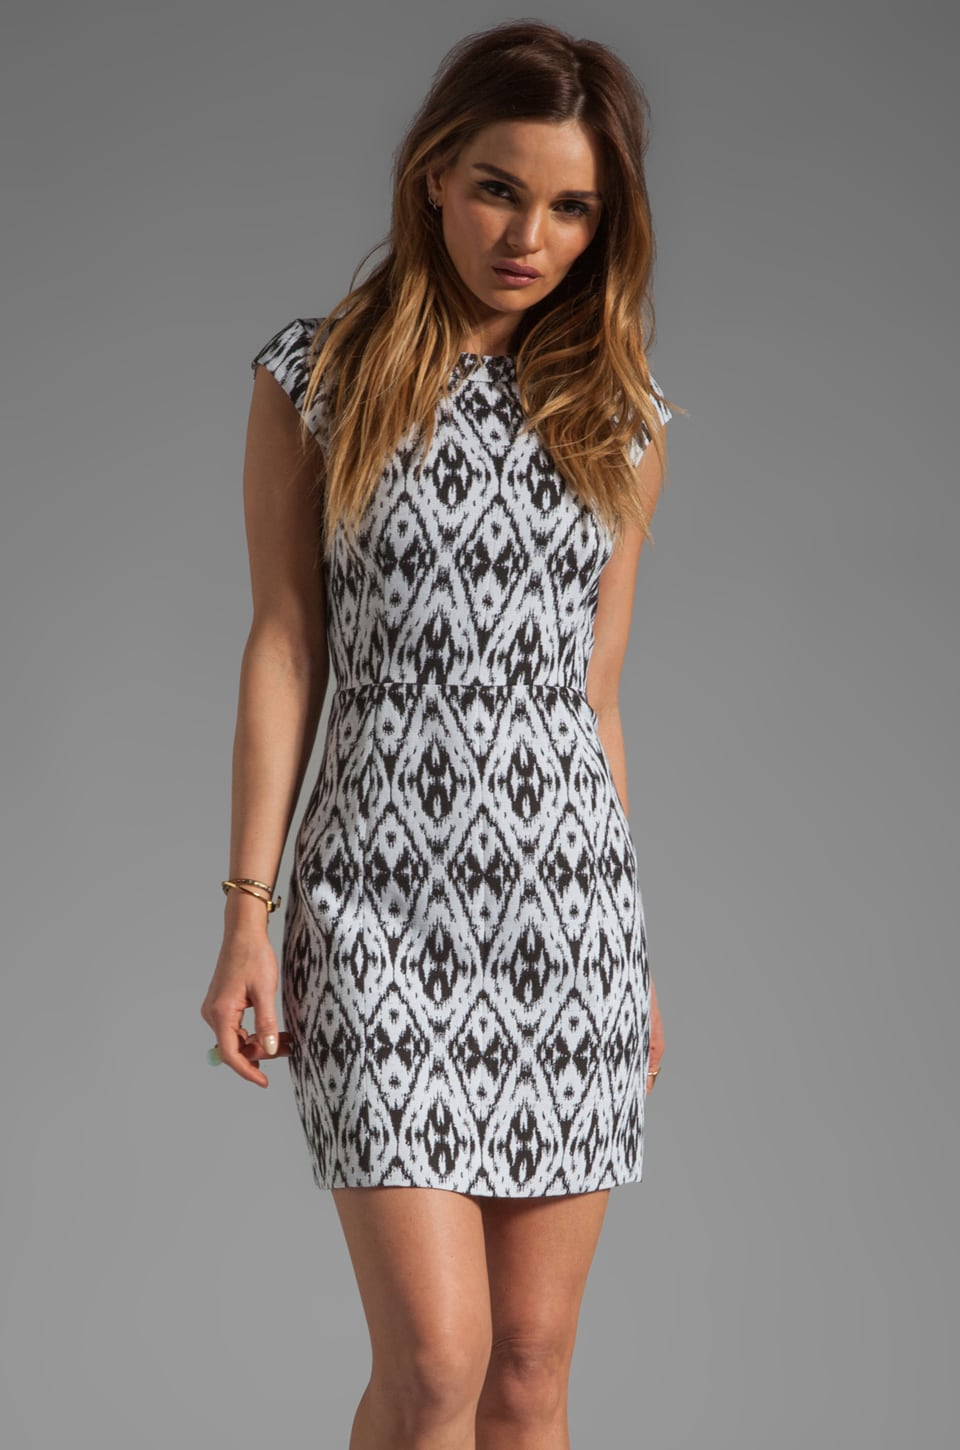 Theory Andes Orinthia Graphic Jacquard Dress in White/Black